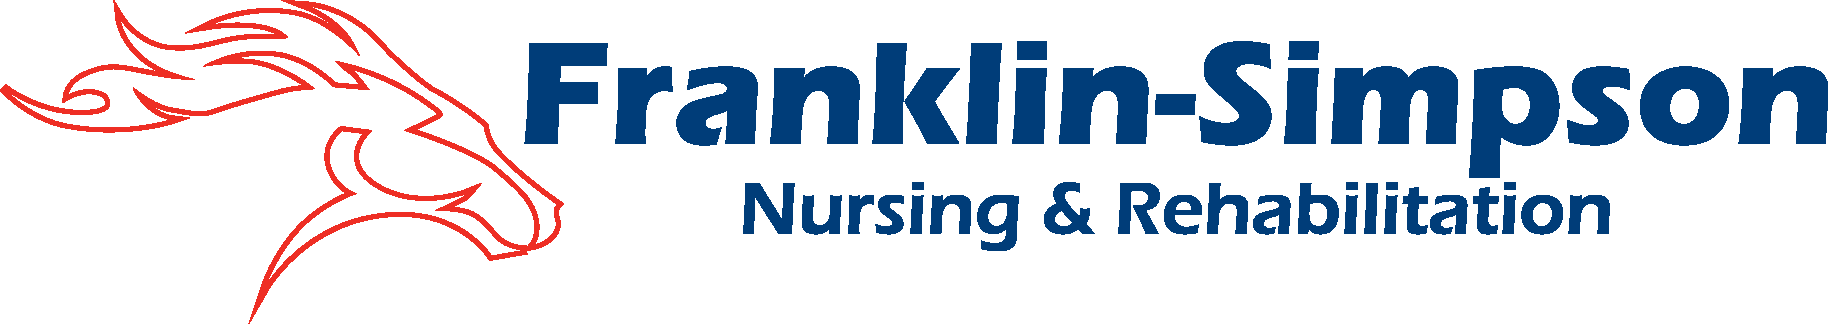 Franklin-Simpson Nursing & Rehabilitation [logo]